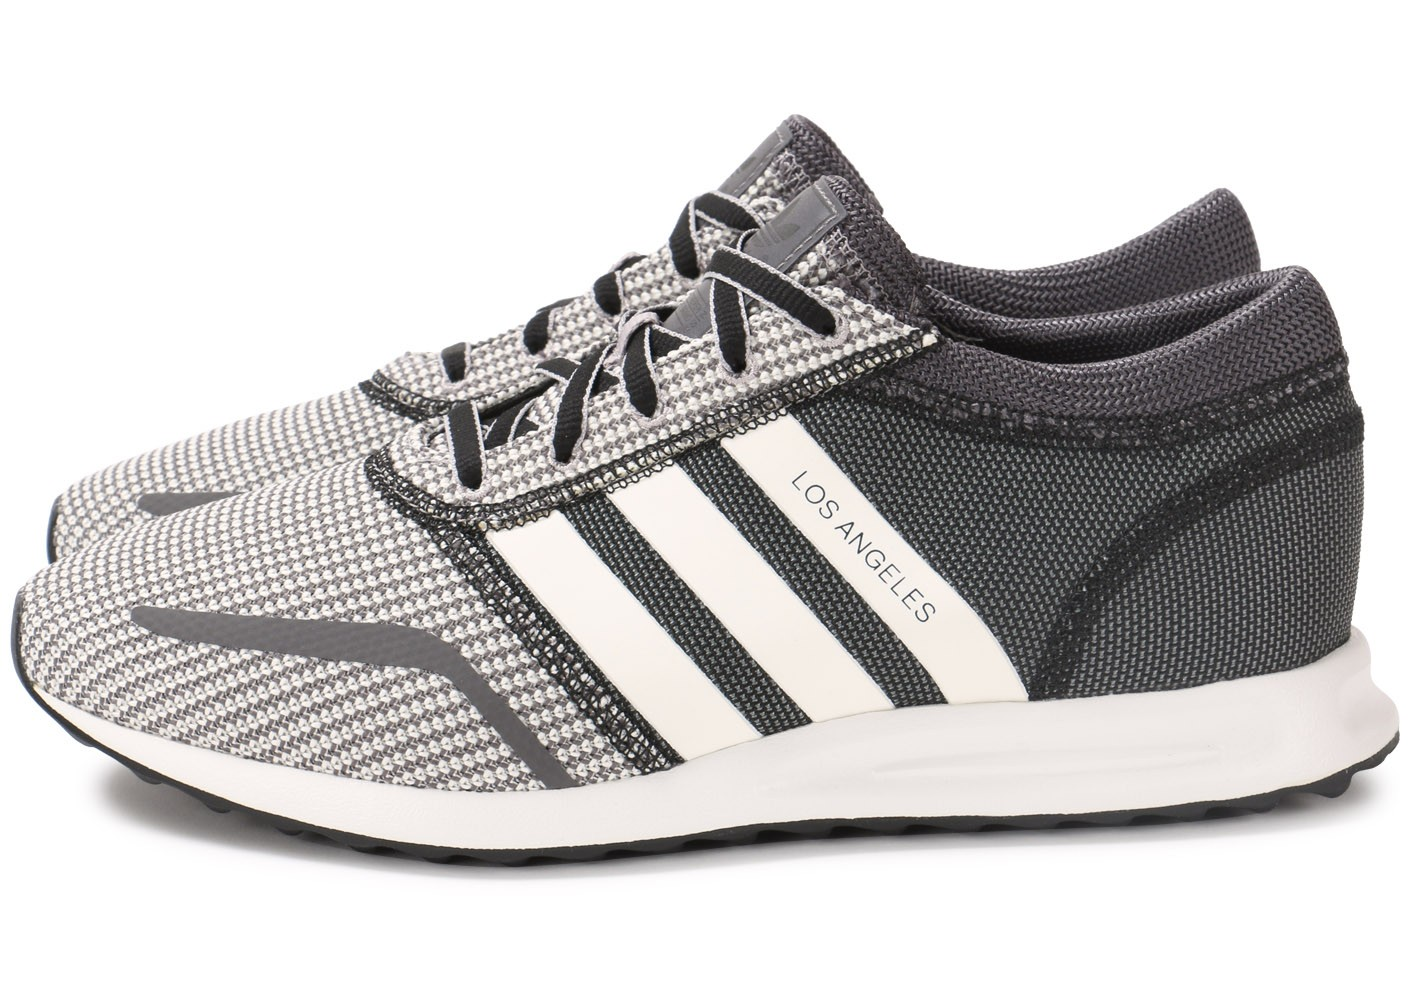 adidas Los Angeles grise - Chaussures Baskets homme - Chausport